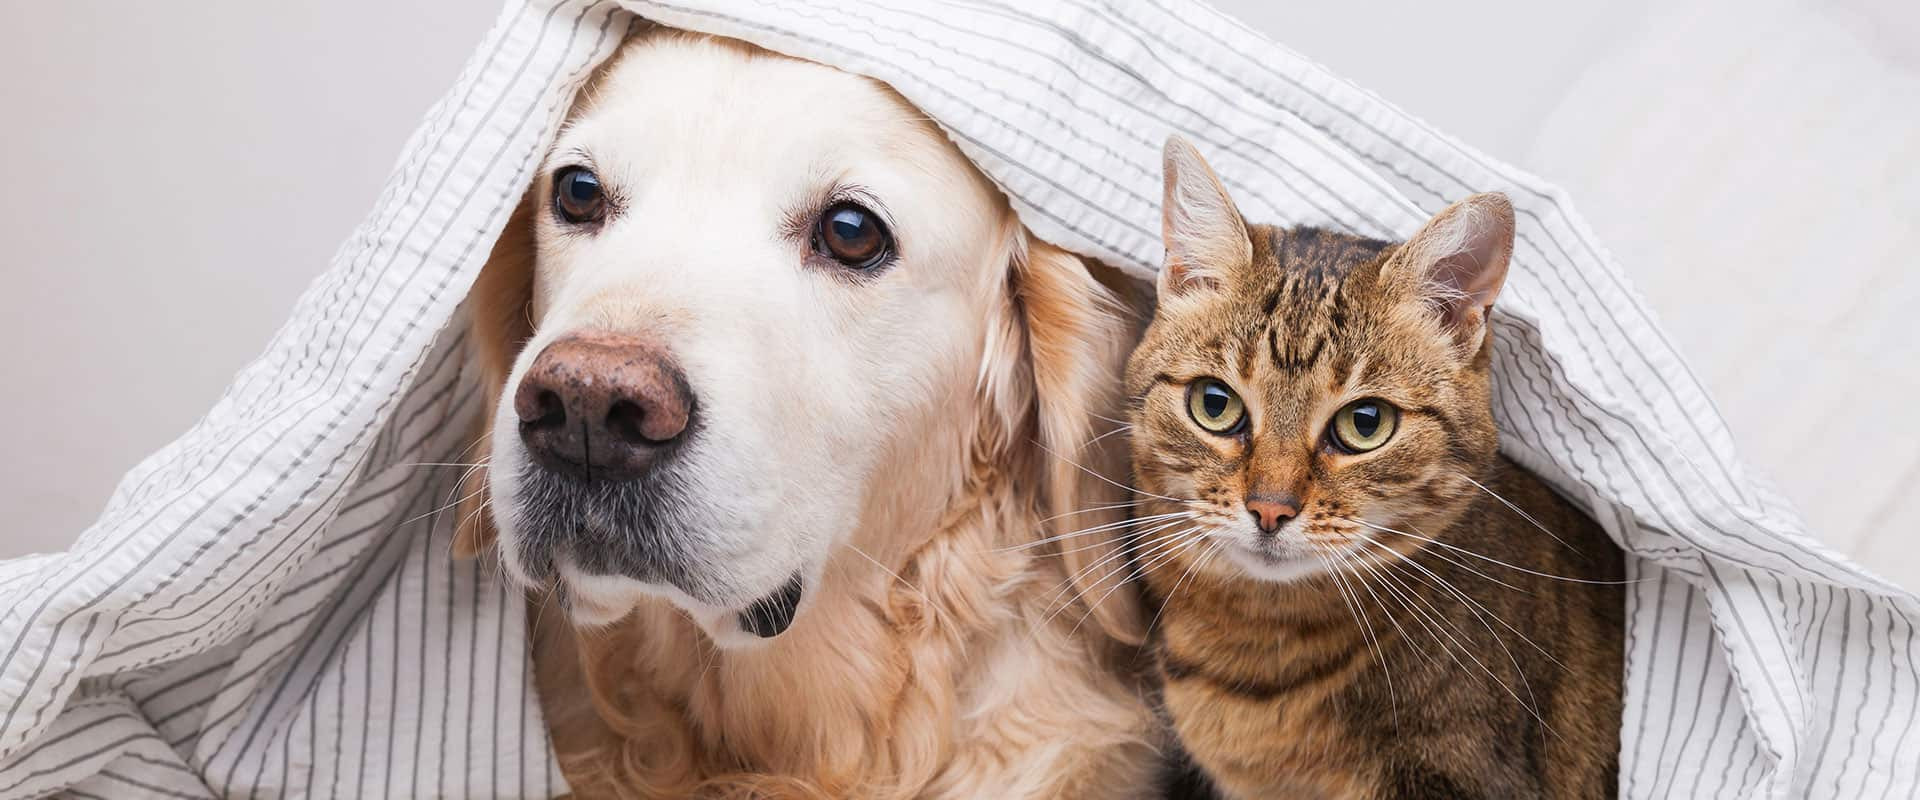 dog and cat looking out from under sheet